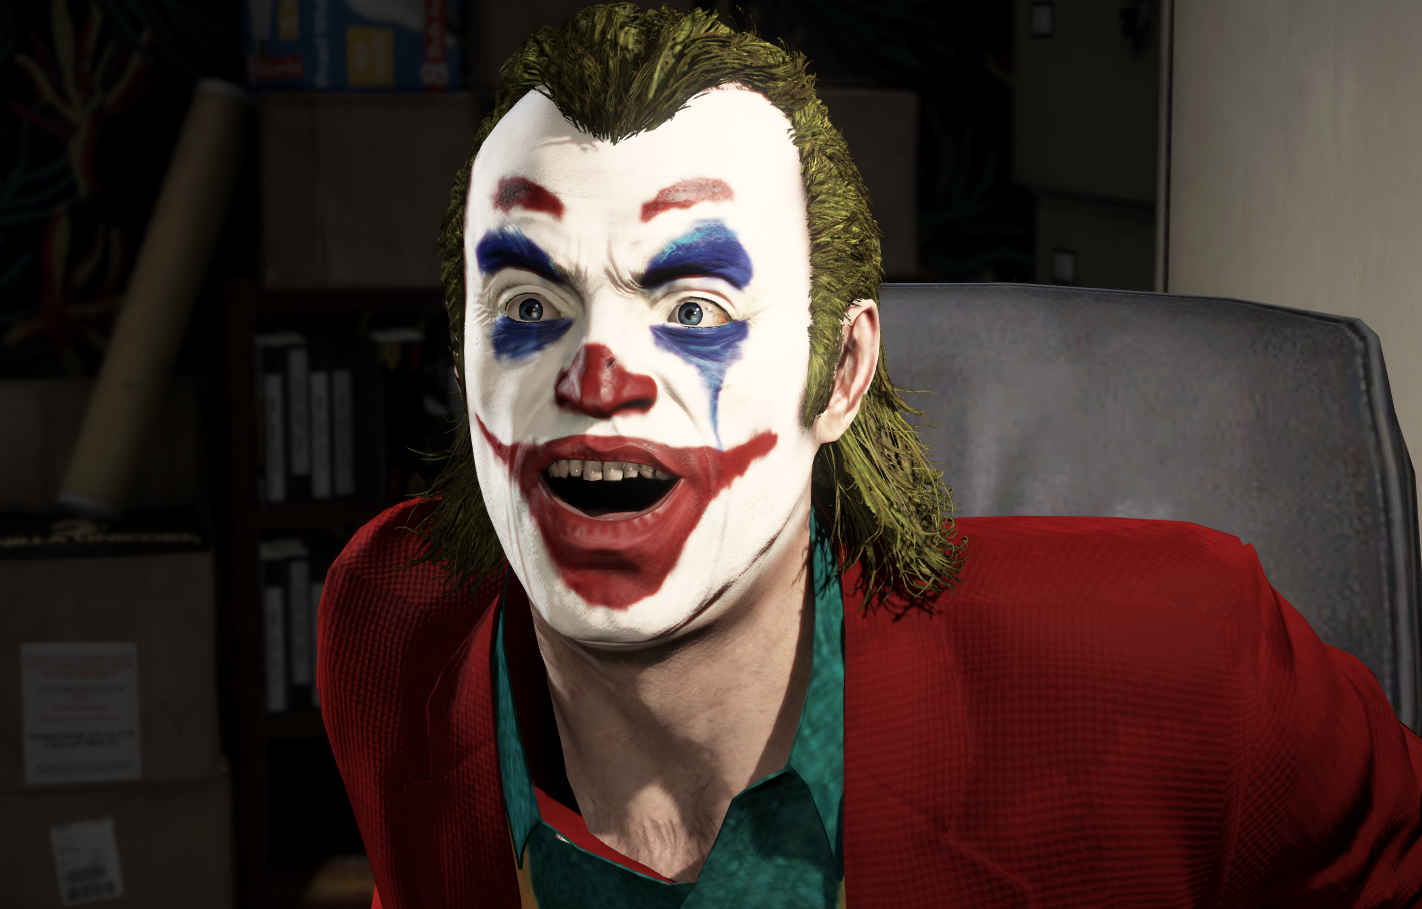 Texture Joker For Trevor Joker 2019 Gta5 Modscom